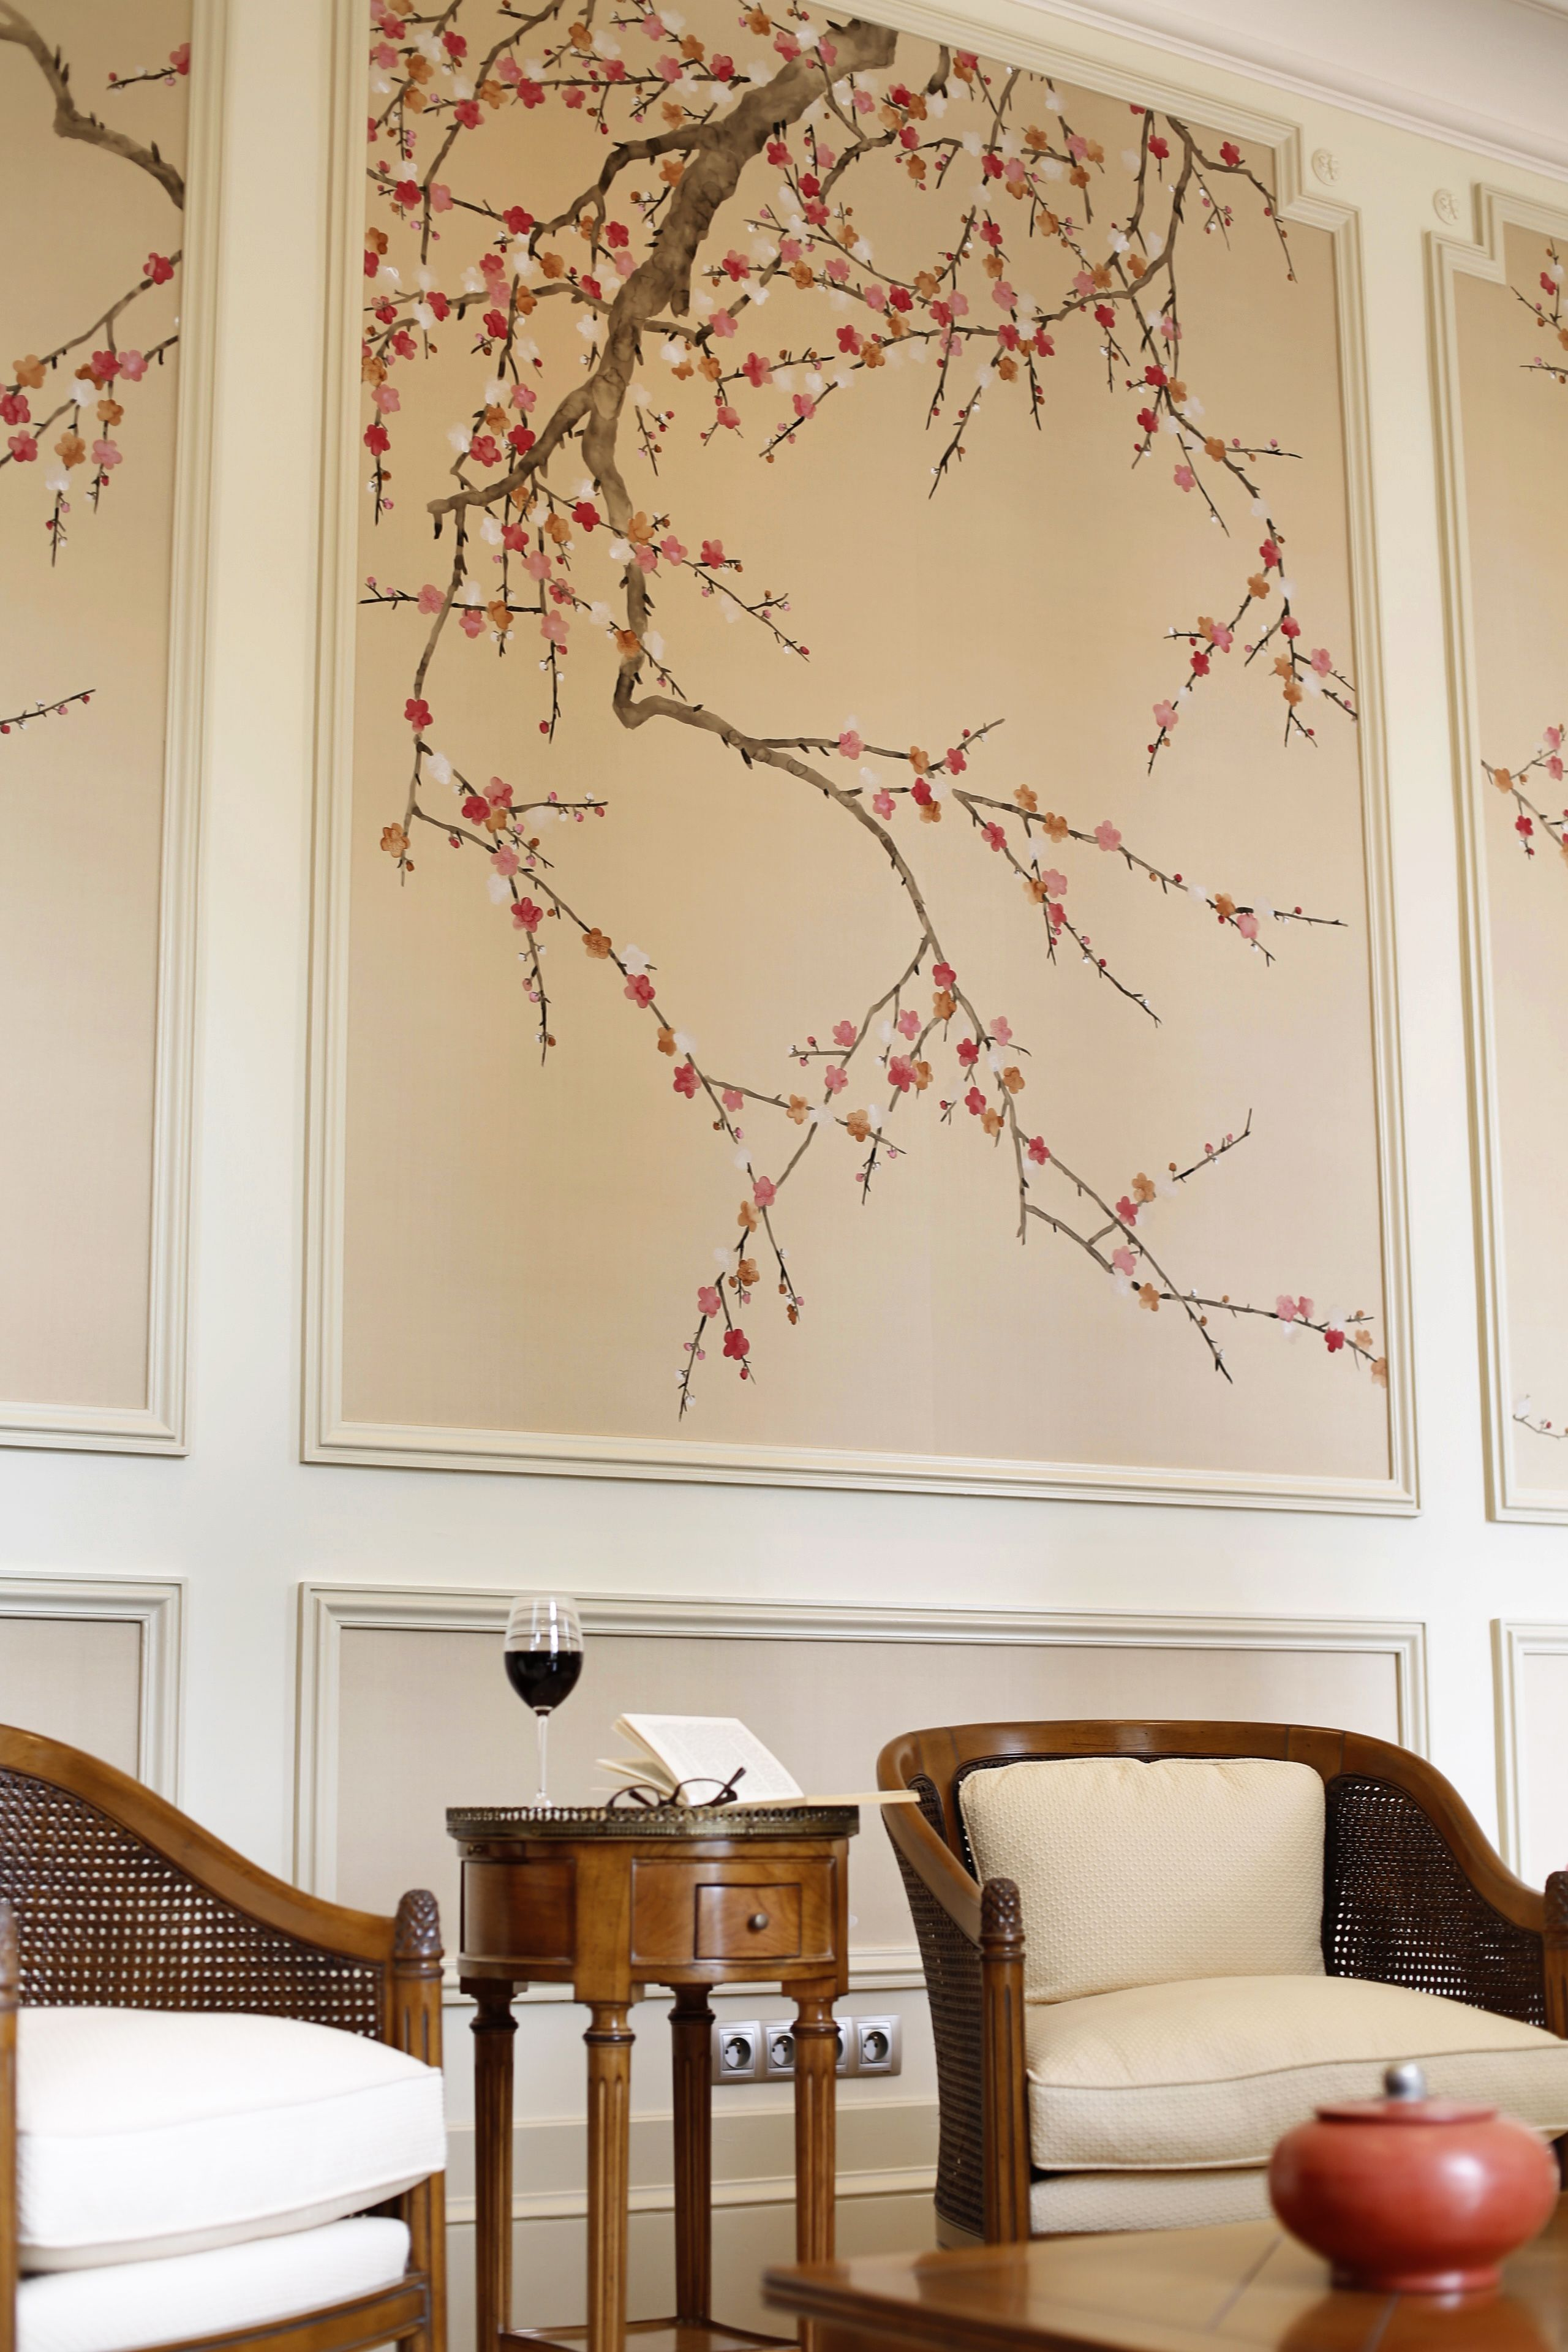 Badminton Quotes Wallpaper De Gournay Hand Painted Plum Blossom Wallpaper Best Wall